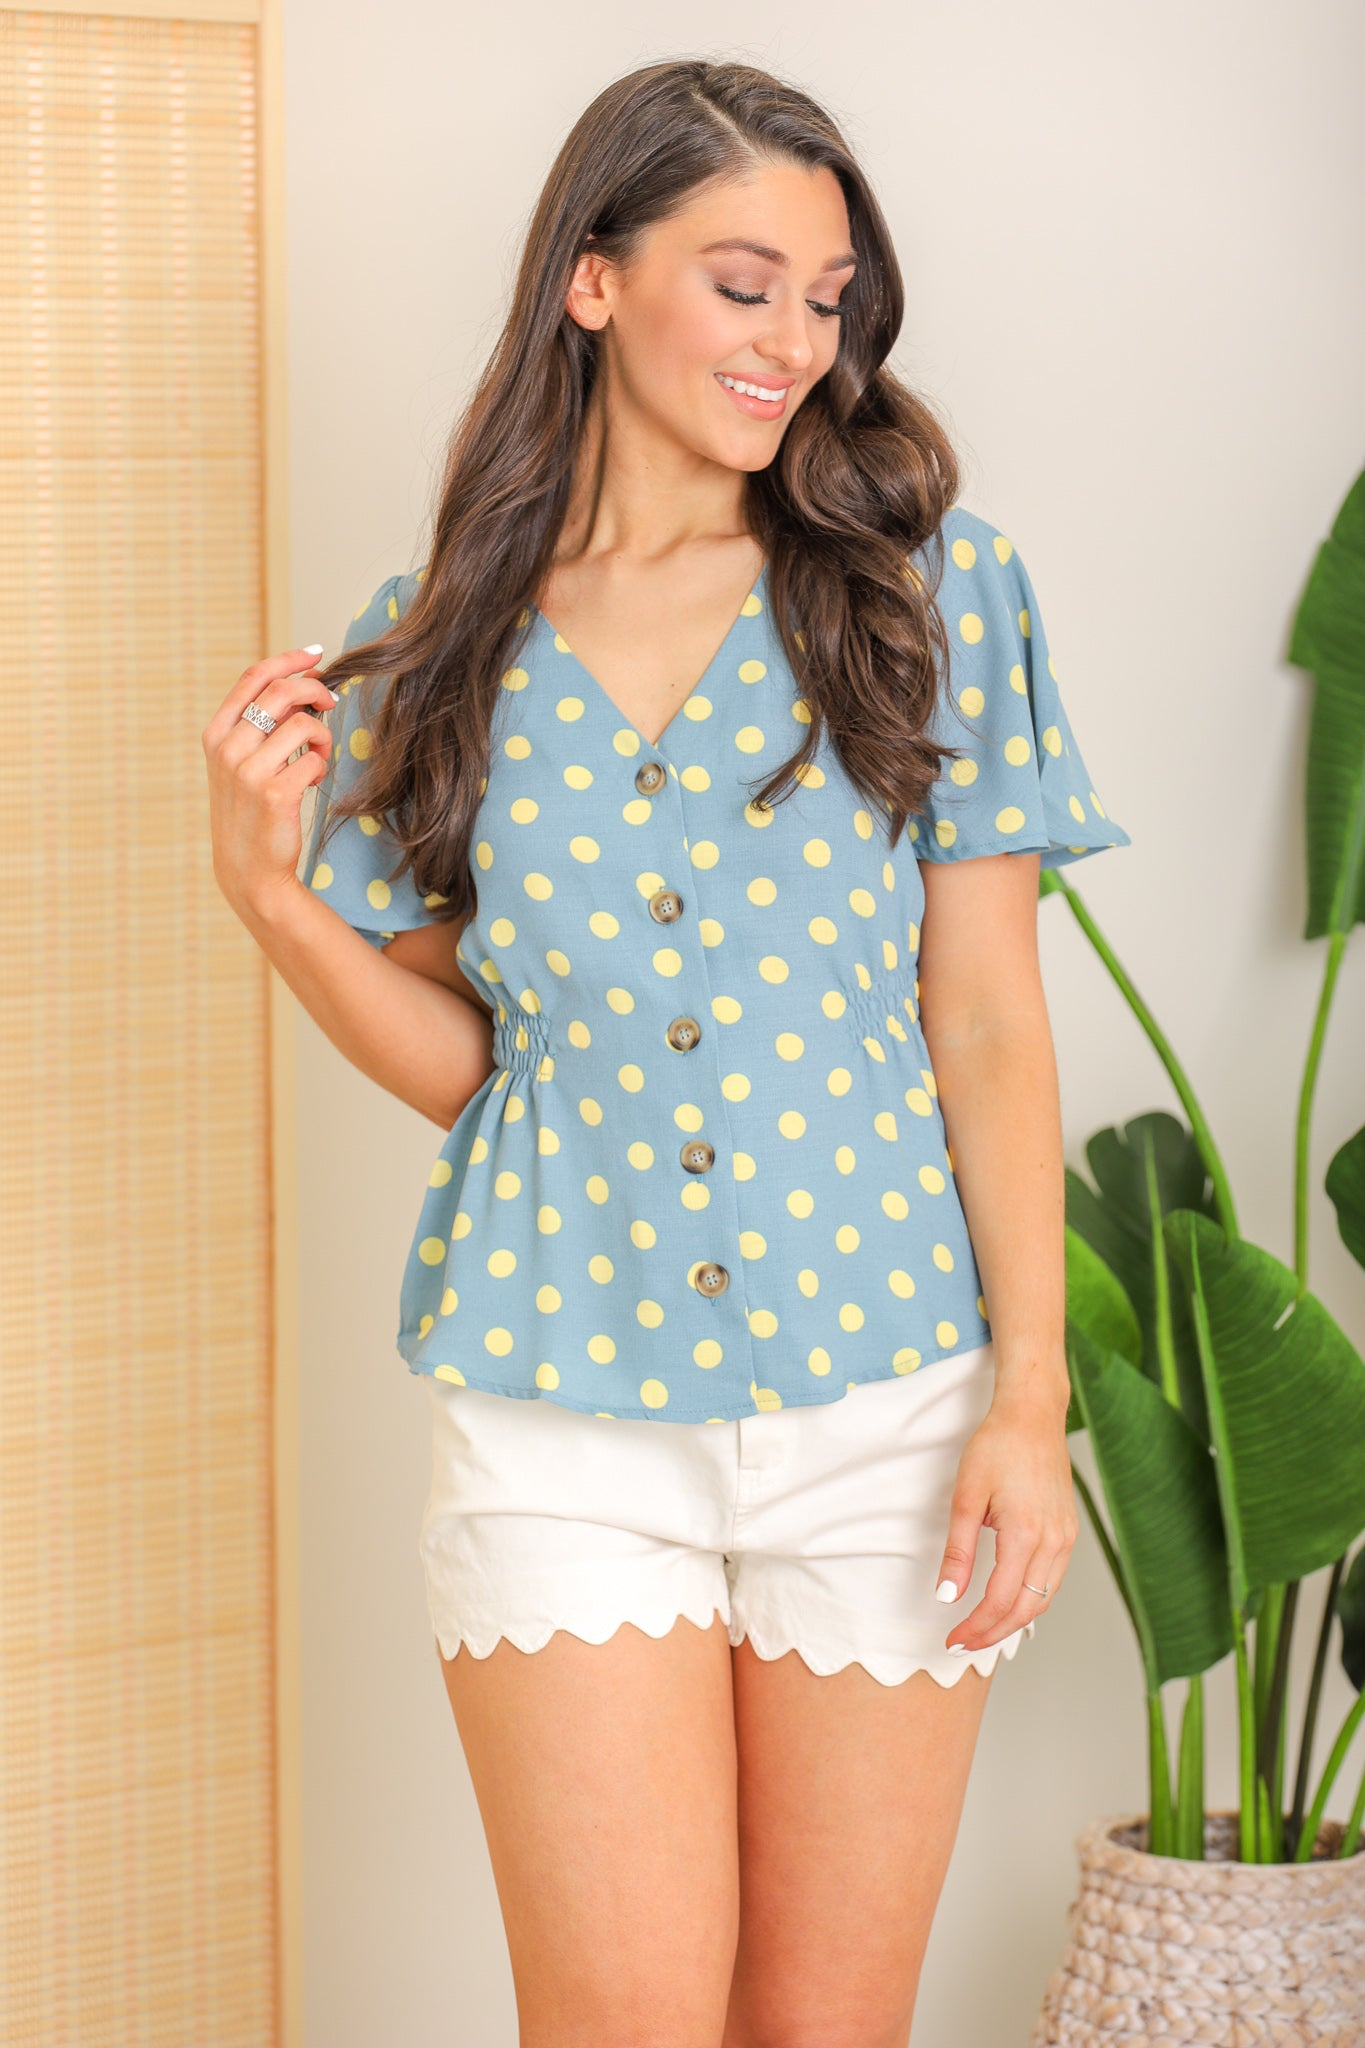 Sunny Days Ahead Polka Dot Top